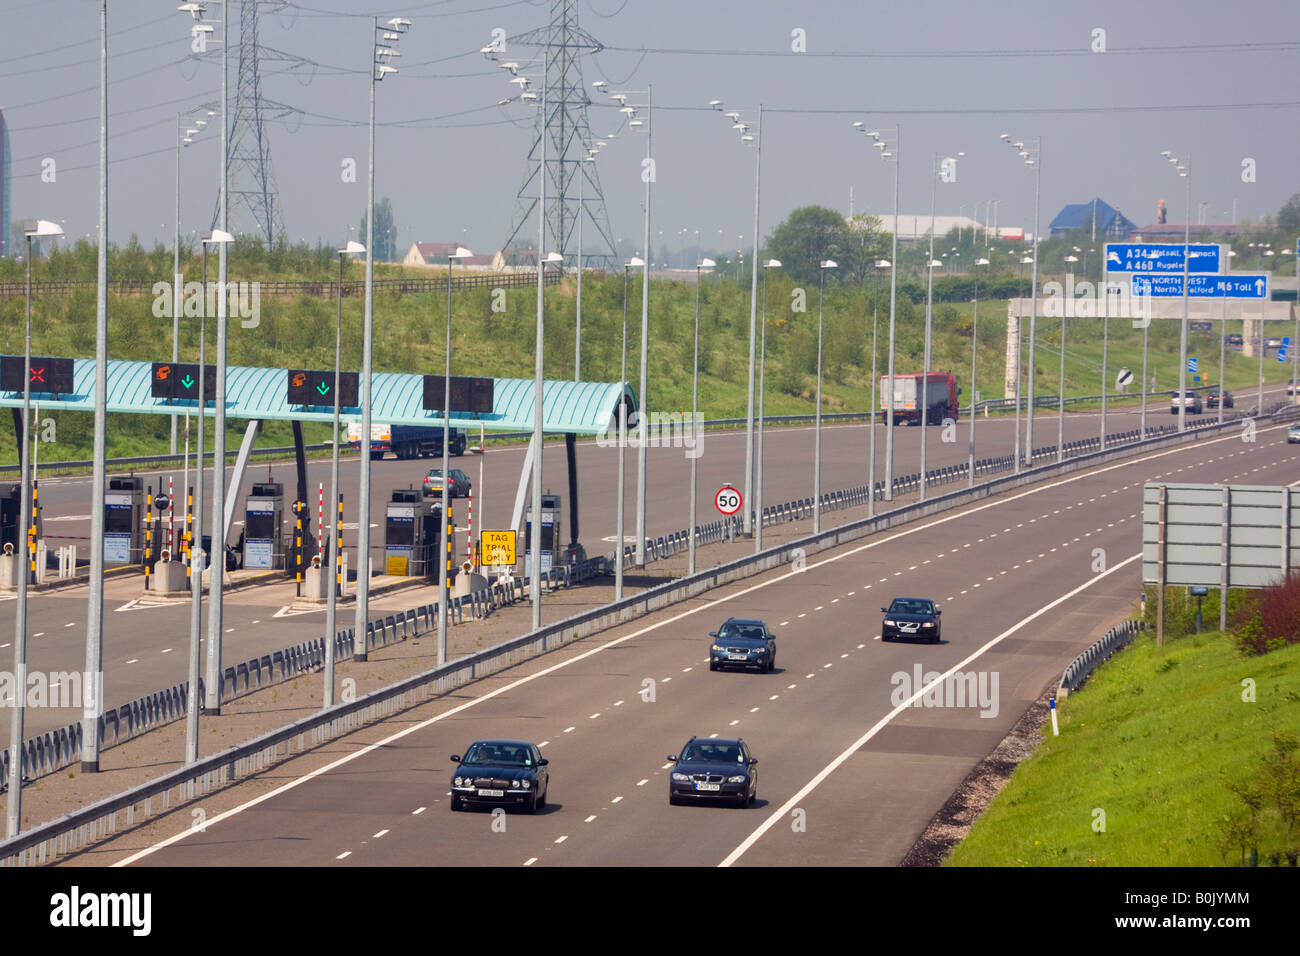 M6 TOLL MOTORWAY from above with toll booths and vehicles on carriageway West Midlands England UK - Stock Image